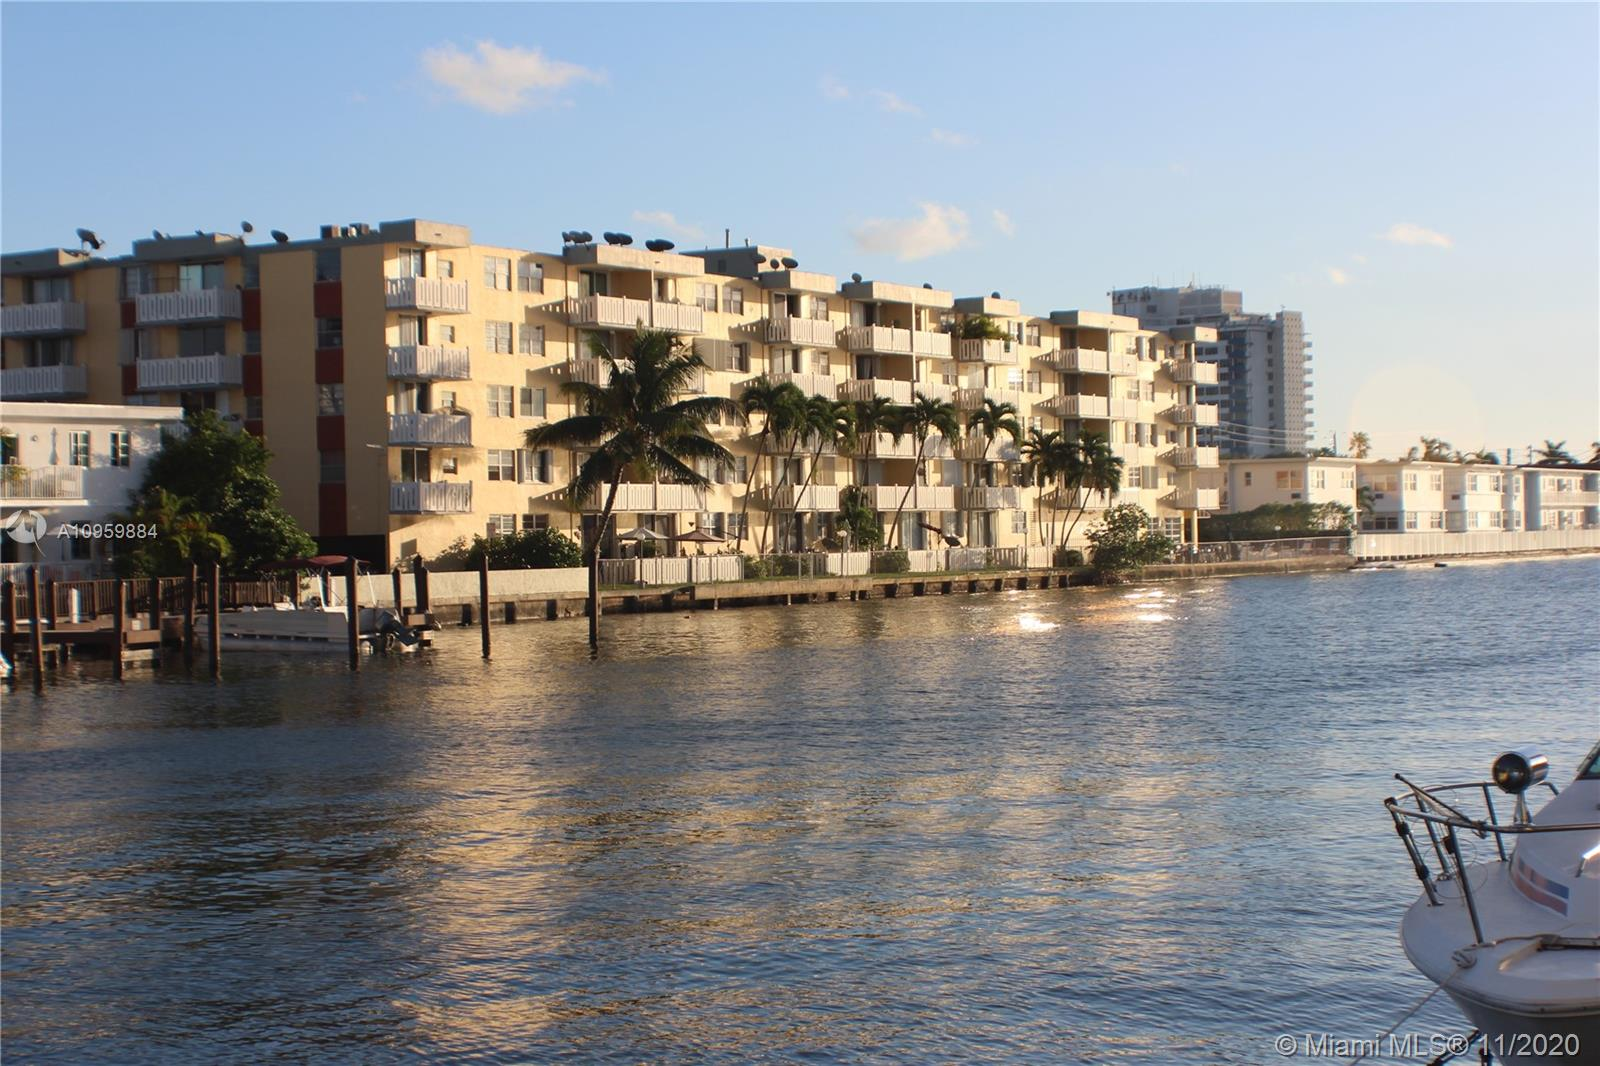 Just blocks from the beach, this spacious unit has a view of Tatum Waterway. Some of the features include a balcony, tiled throughout, updated kitchen, and assigned parking space. Boutique building with a pool, undergoing renovations so the new buyer can enjoy its completion and more .  Perfect for owner occupant or investor. Low maintenance.